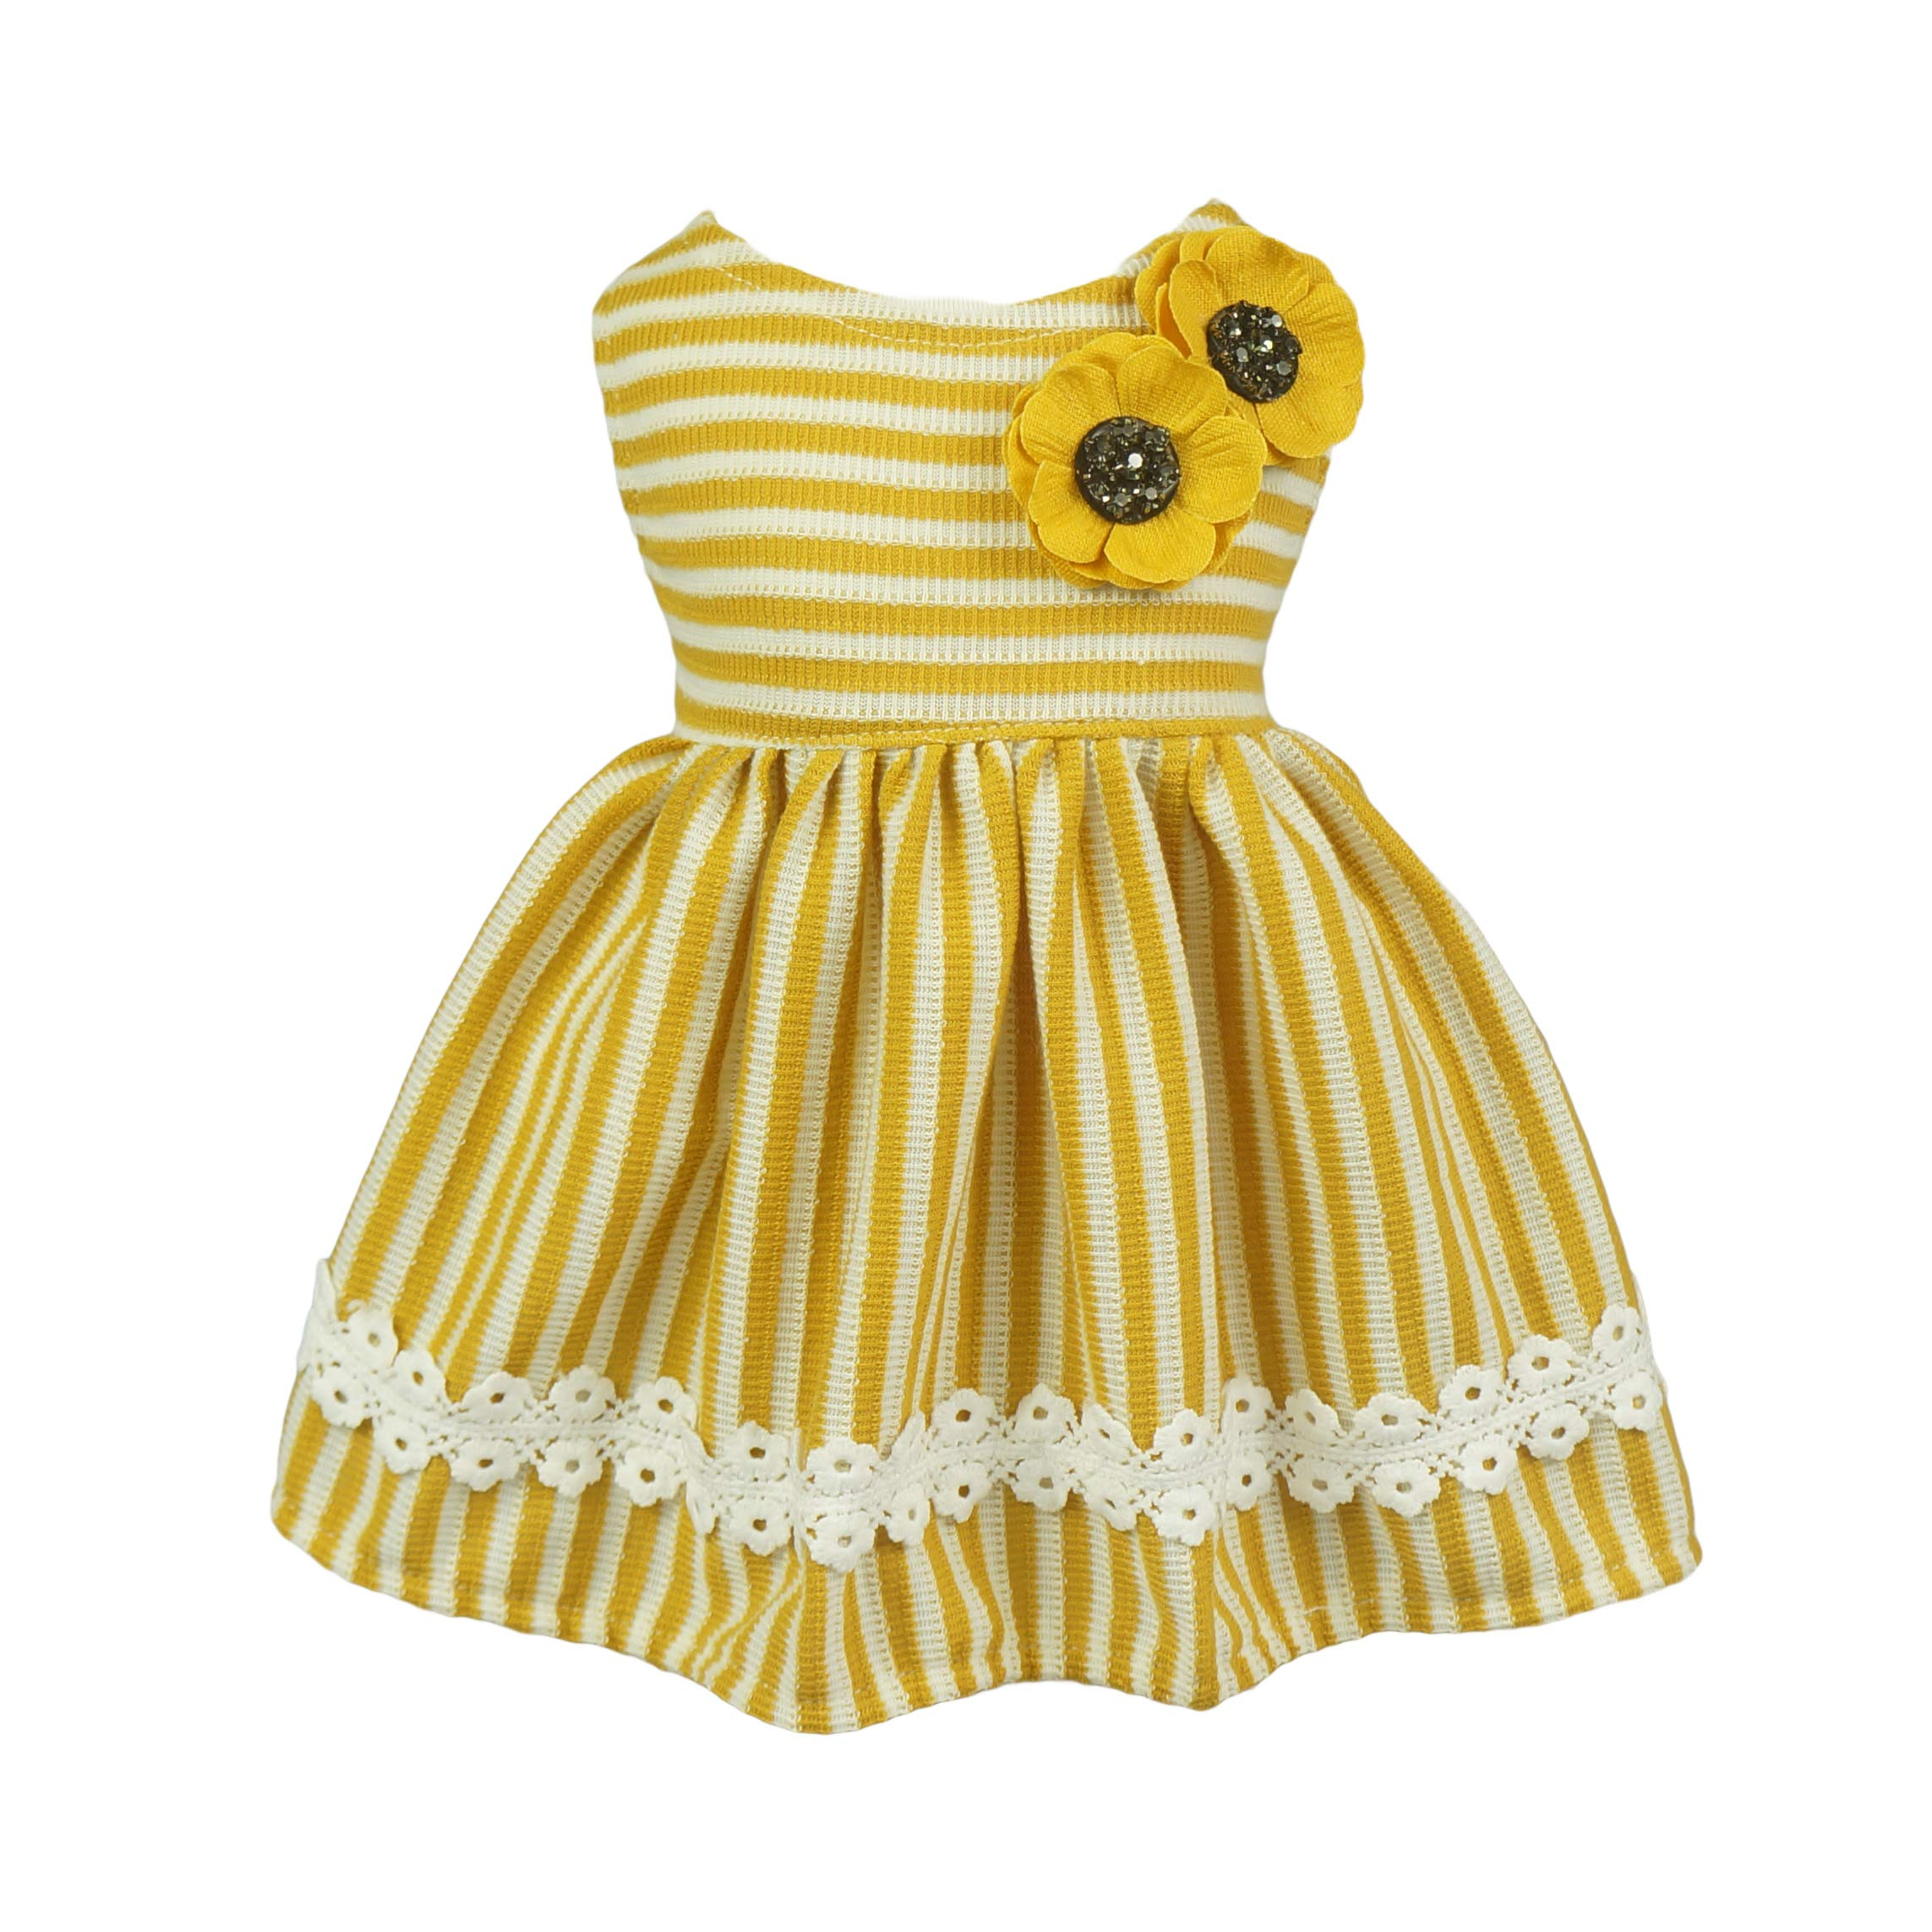 Fitwarm Flowers Pet Clothes for Dog Dresses Vest Shirts Sundress Mustard Yellow Medium by Fitwarm